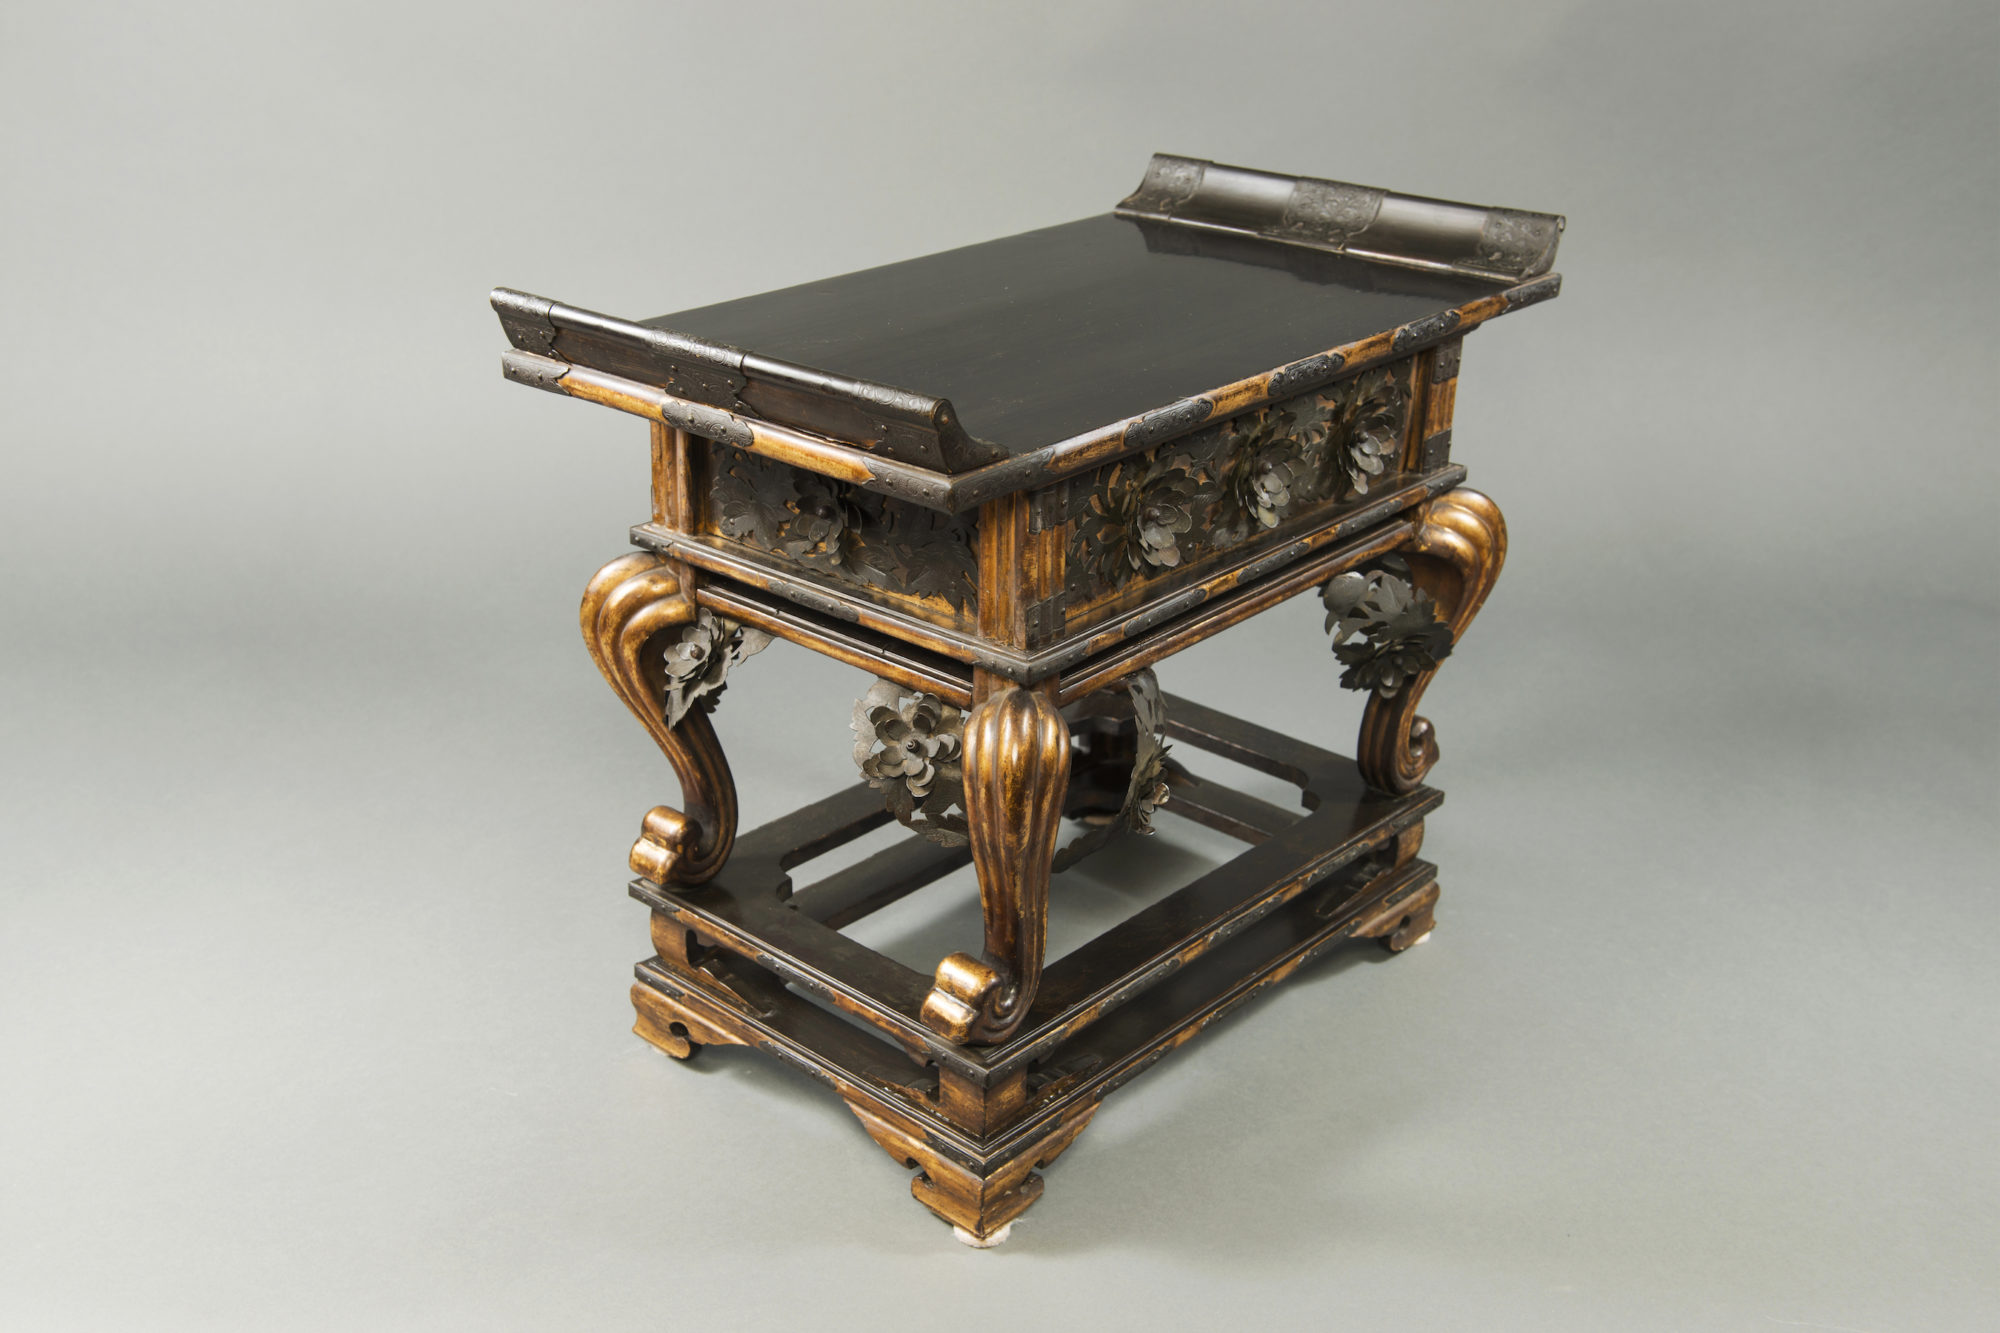 Japanese Late 18th – Early 19th  Century Buddhist Stand in Lacquer, Gold, and Bronze